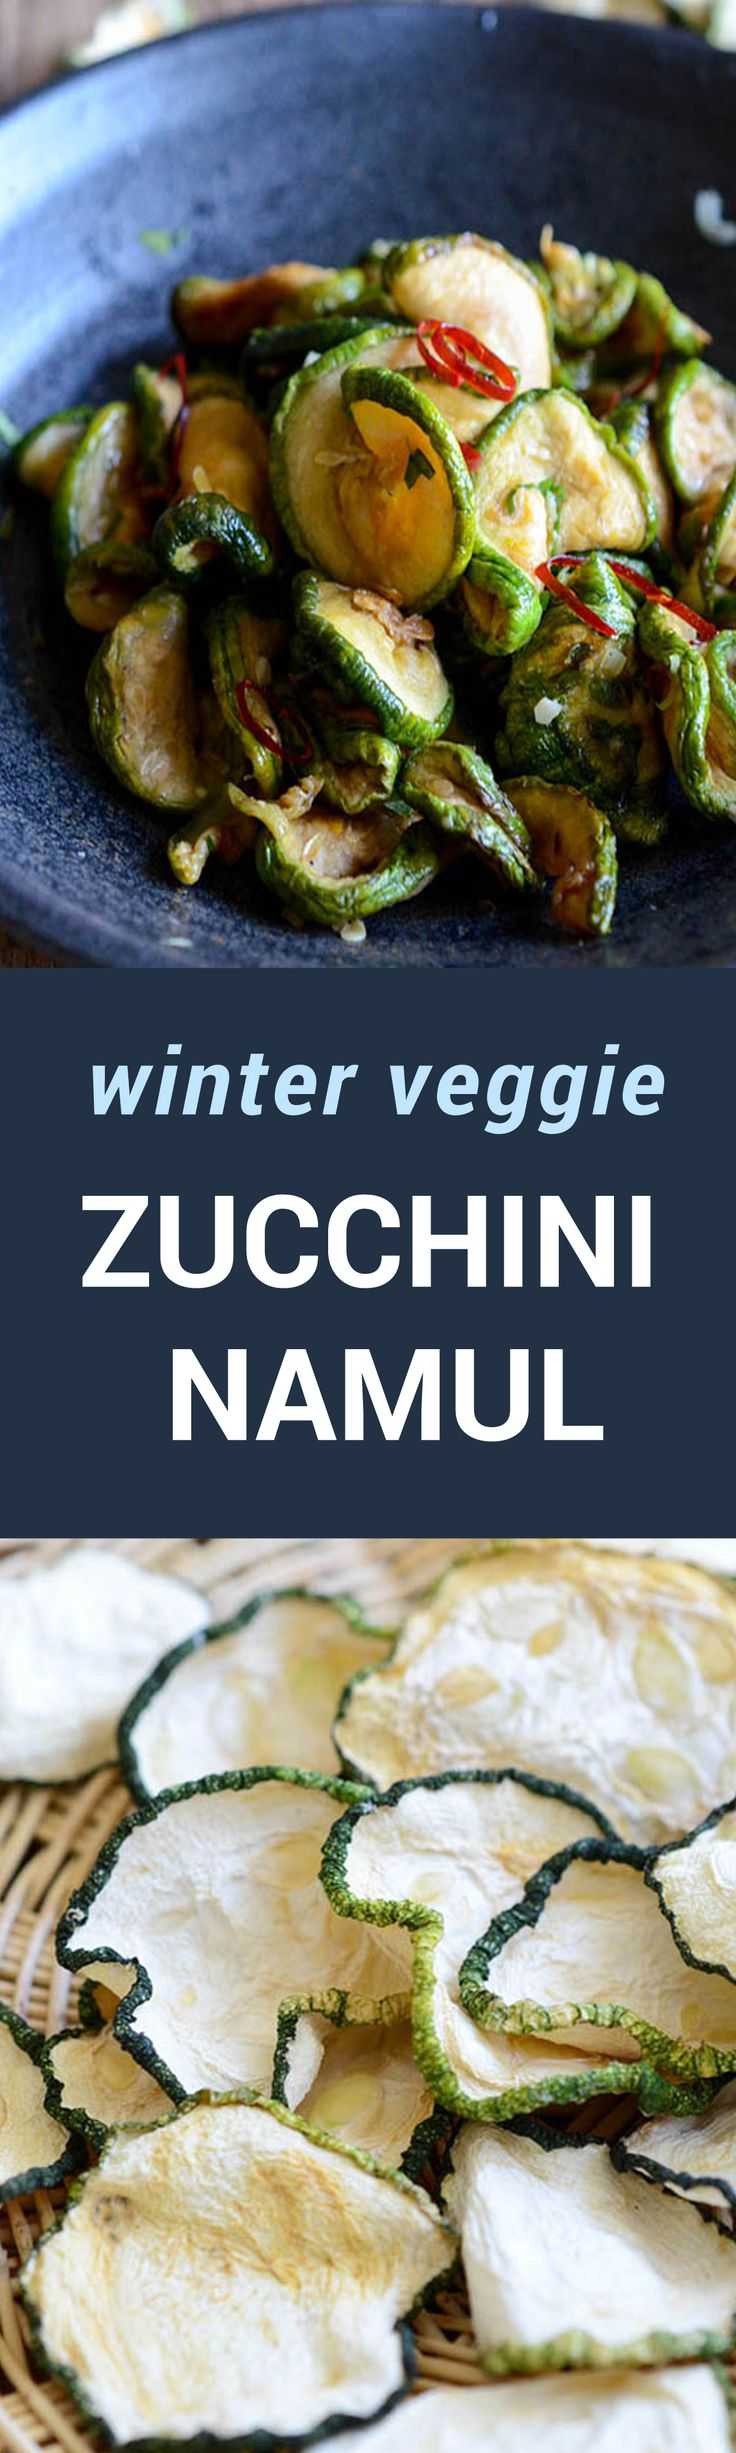 "Healthy and also gluten free, my zucchini side dish recipe uses dried zucchini slices instead of fresh. In Korean, it is called Maleun hobak namul (마른호박나물 Maleun (마른) where maleun means ""dried"" and hobak(호박) means ""zucchini/squash""."